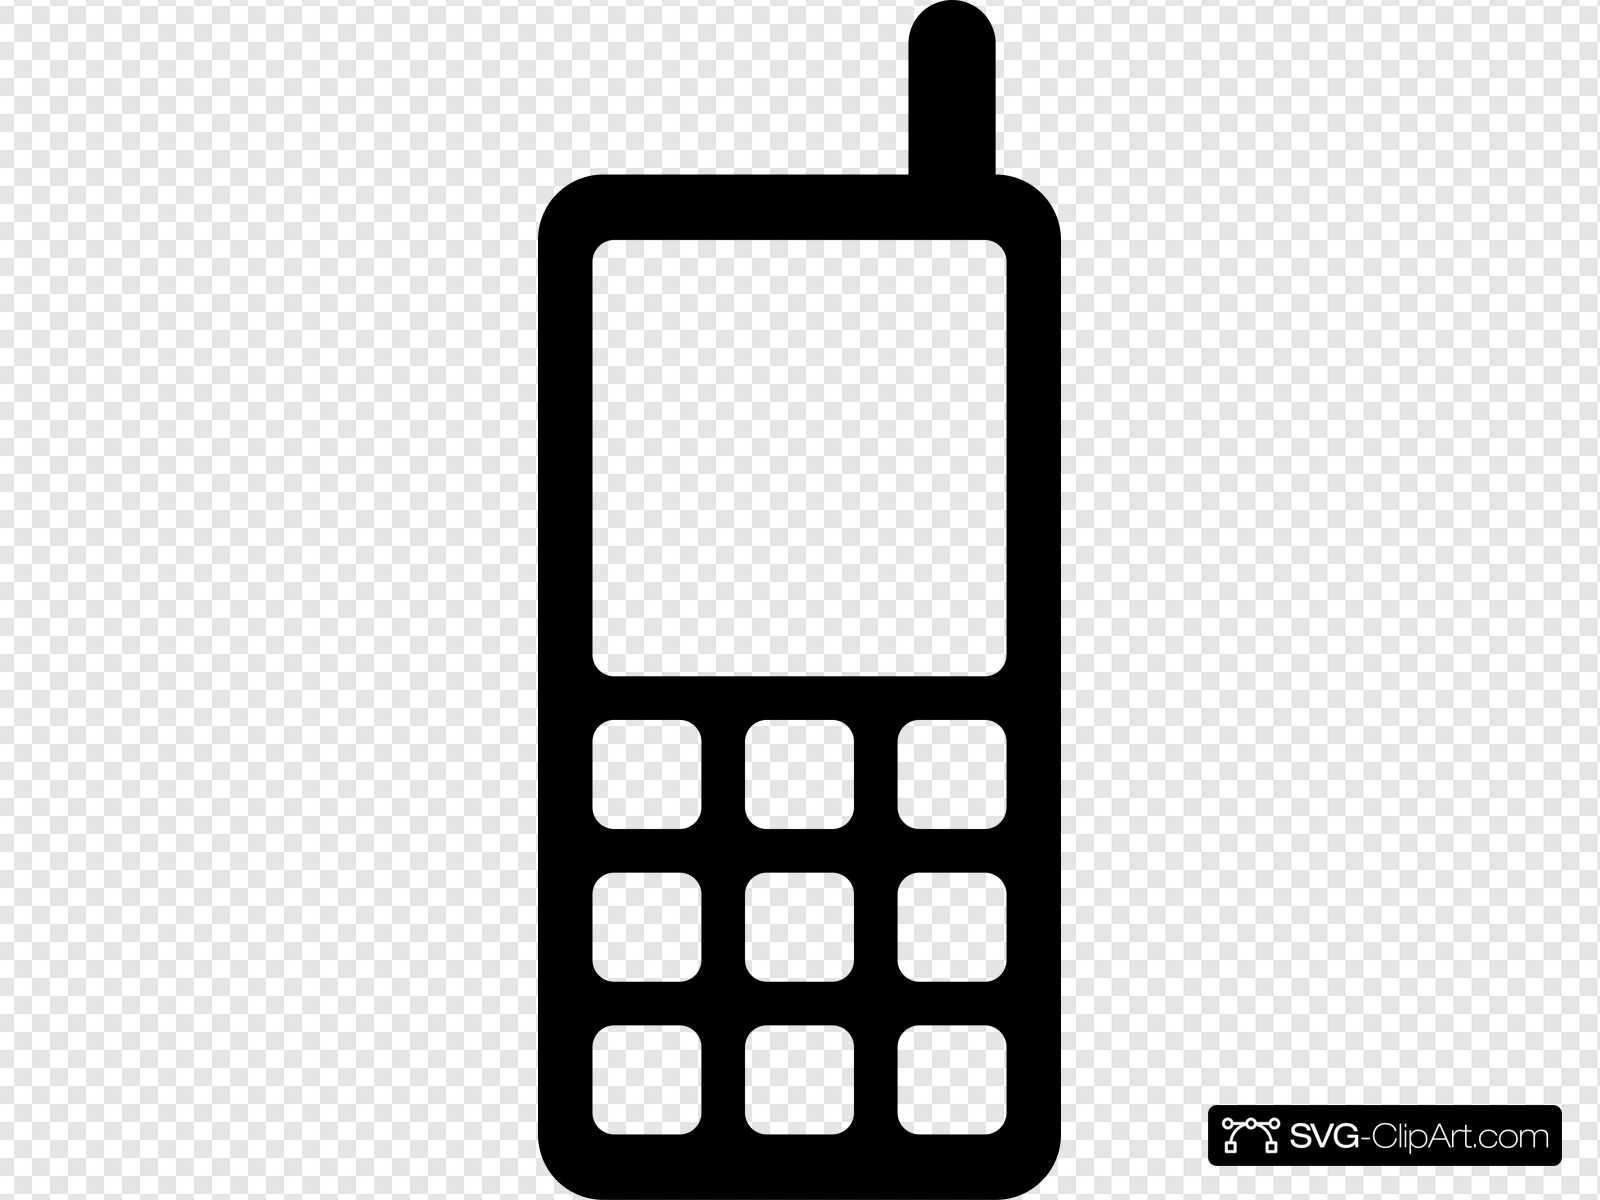 Icon Mobile Phone Clip art, Icon and SVG.